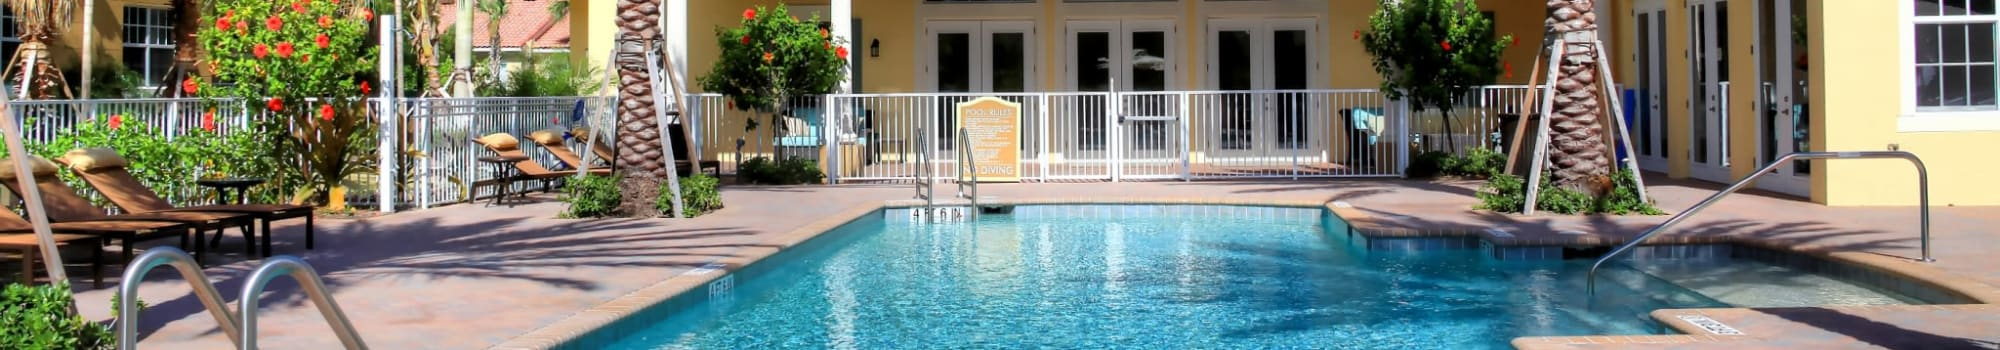 Photos at Riverwalk Pointe in Jupiter, Florida